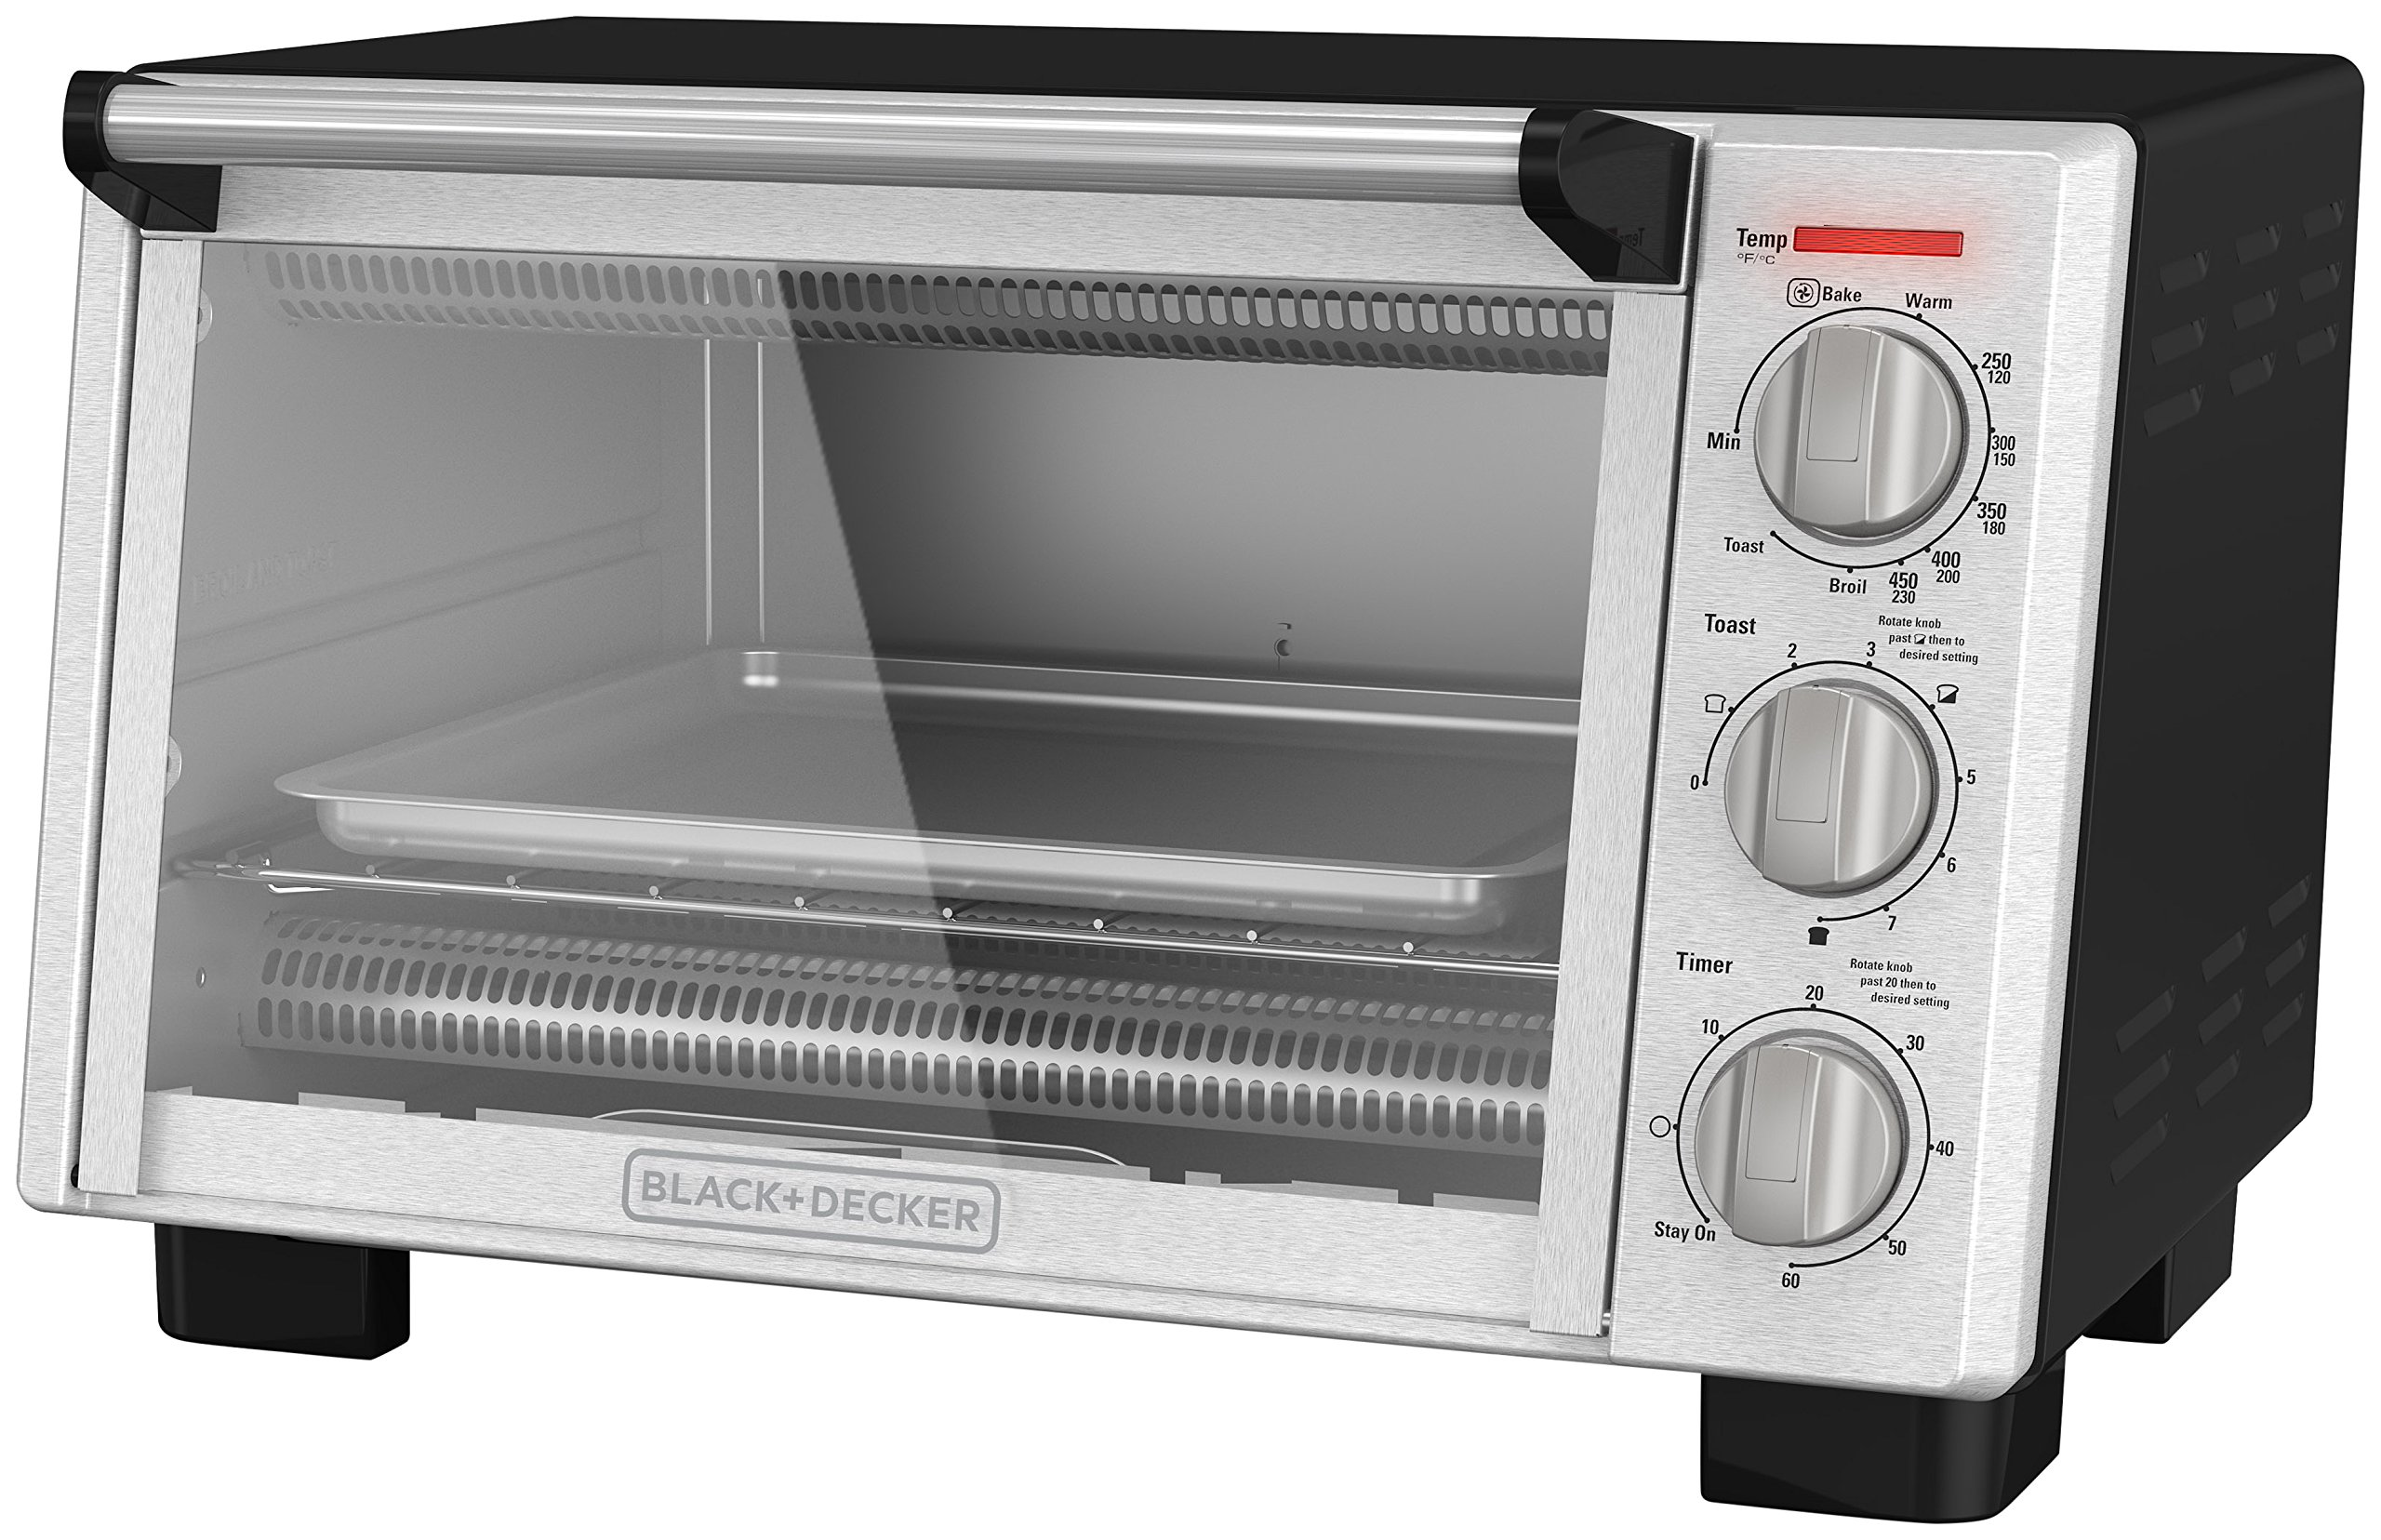 BLACK+DECKER 6-Slice Convection Countertop Toaster Oven, Stainless Steel/Black, TO2055S by BLACK+DECKER